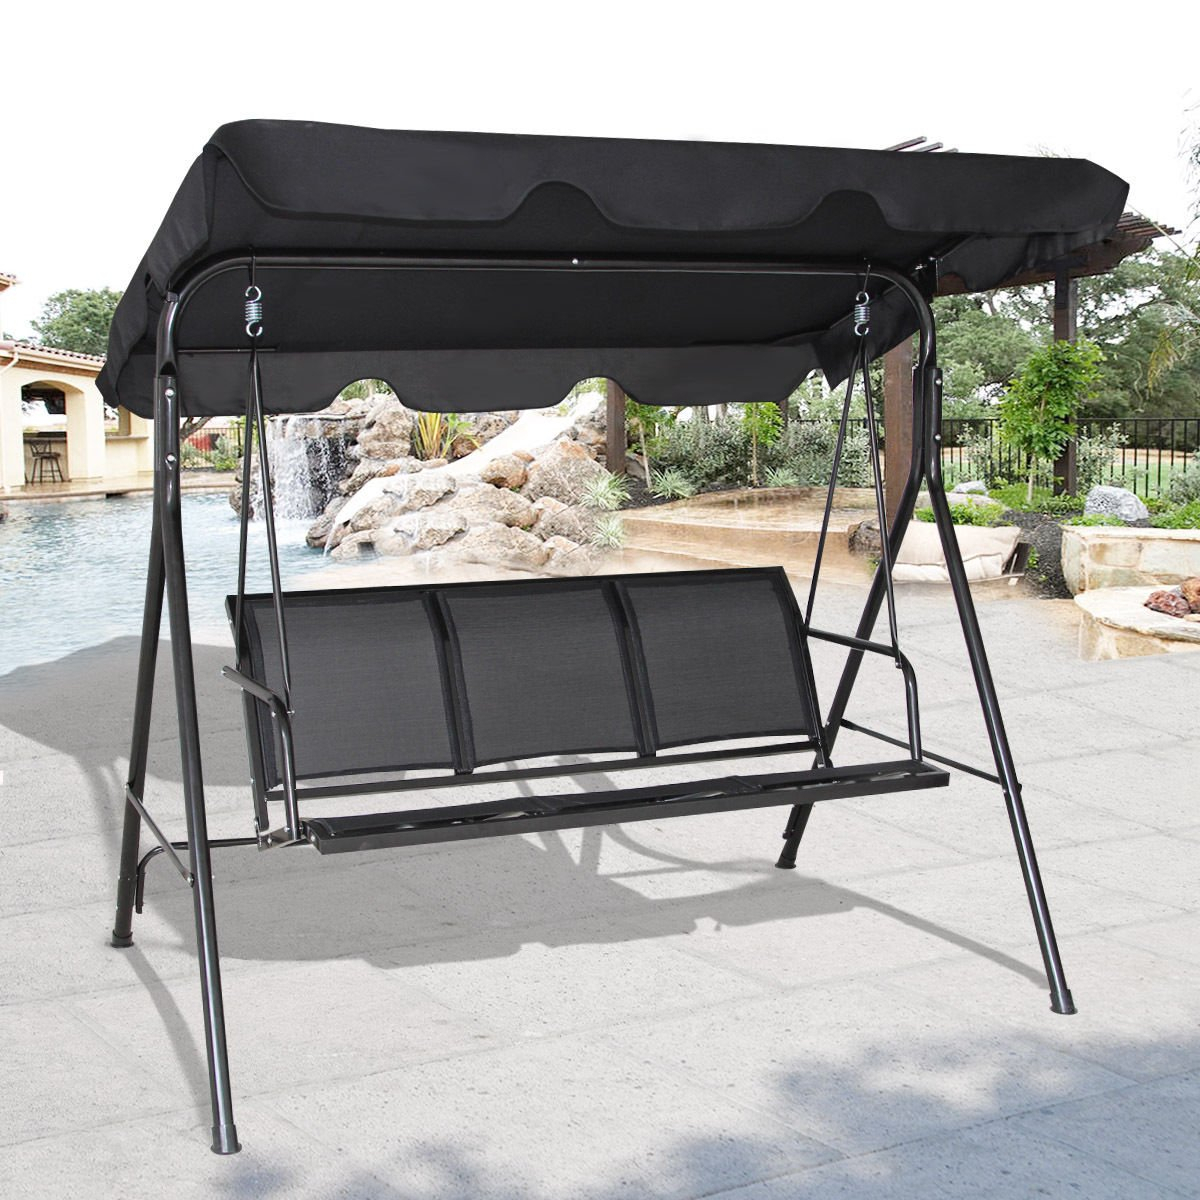 Cheap Patio 3 Person Swing, Find Patio 3 Person Swing Deals Regarding 2 Person Hammock Porch Swing Patio Outdoor Hanging Loveseat Canopy Glider Swings (View 16 of 25)